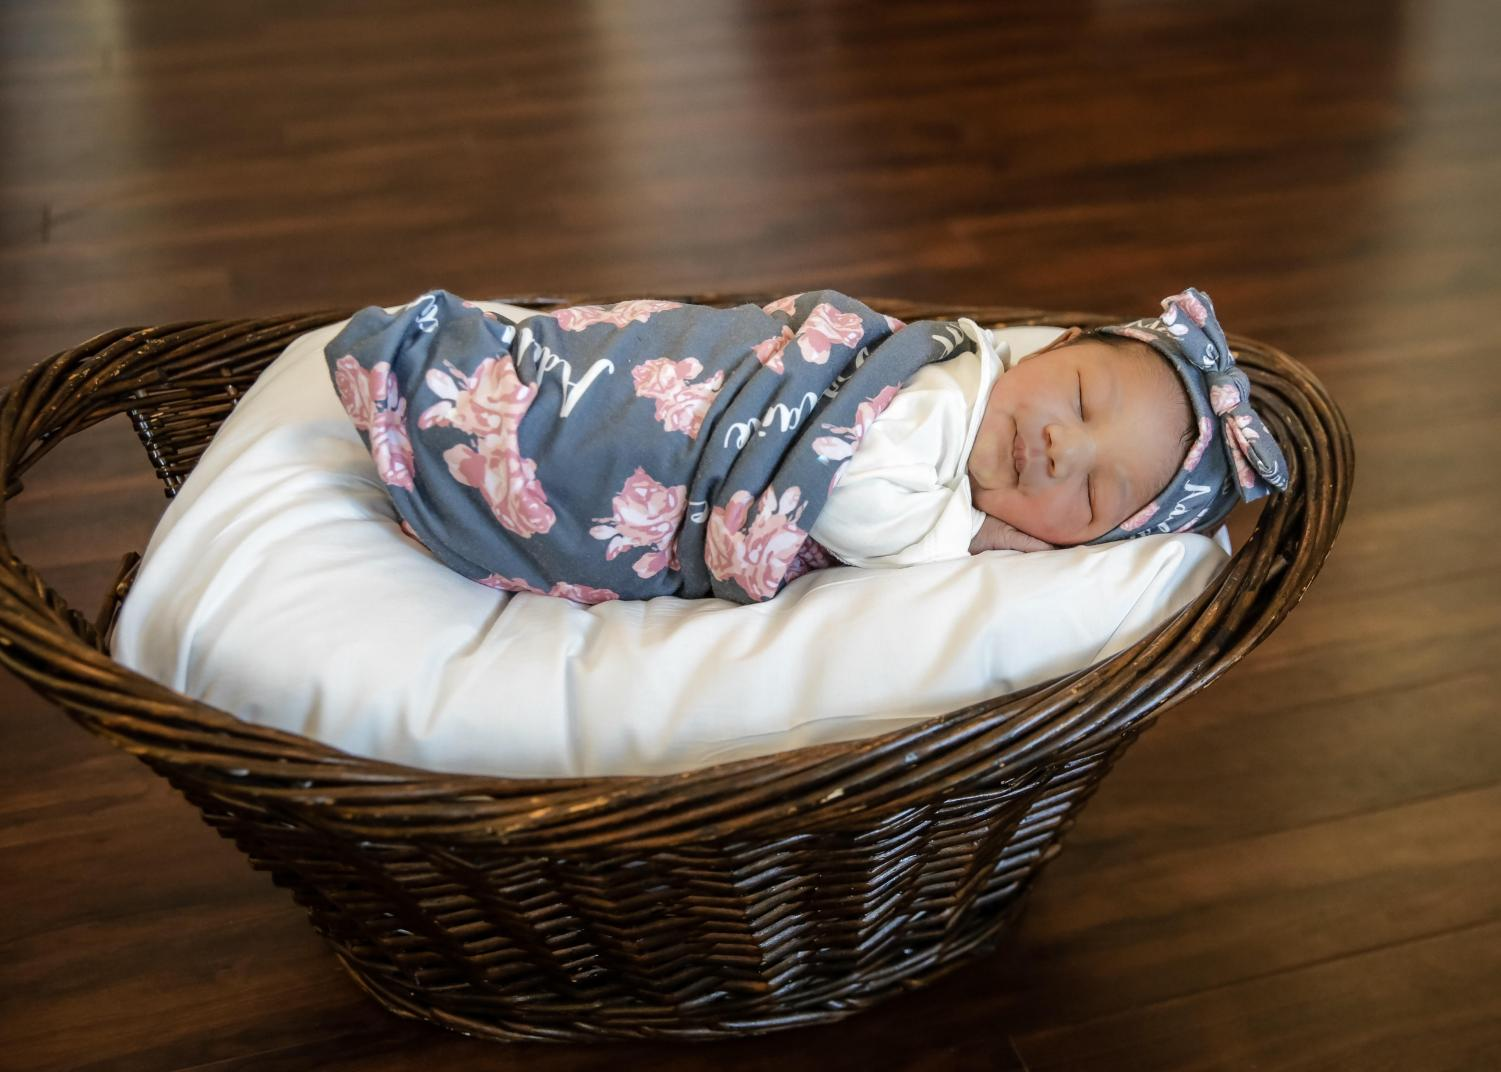 BUNDLE OF JOY: Mr. Baker, Community School assistant principal, shared with the Inlet Grove family his new family addition, Adelaide Grace Baker, born Oct. 14.